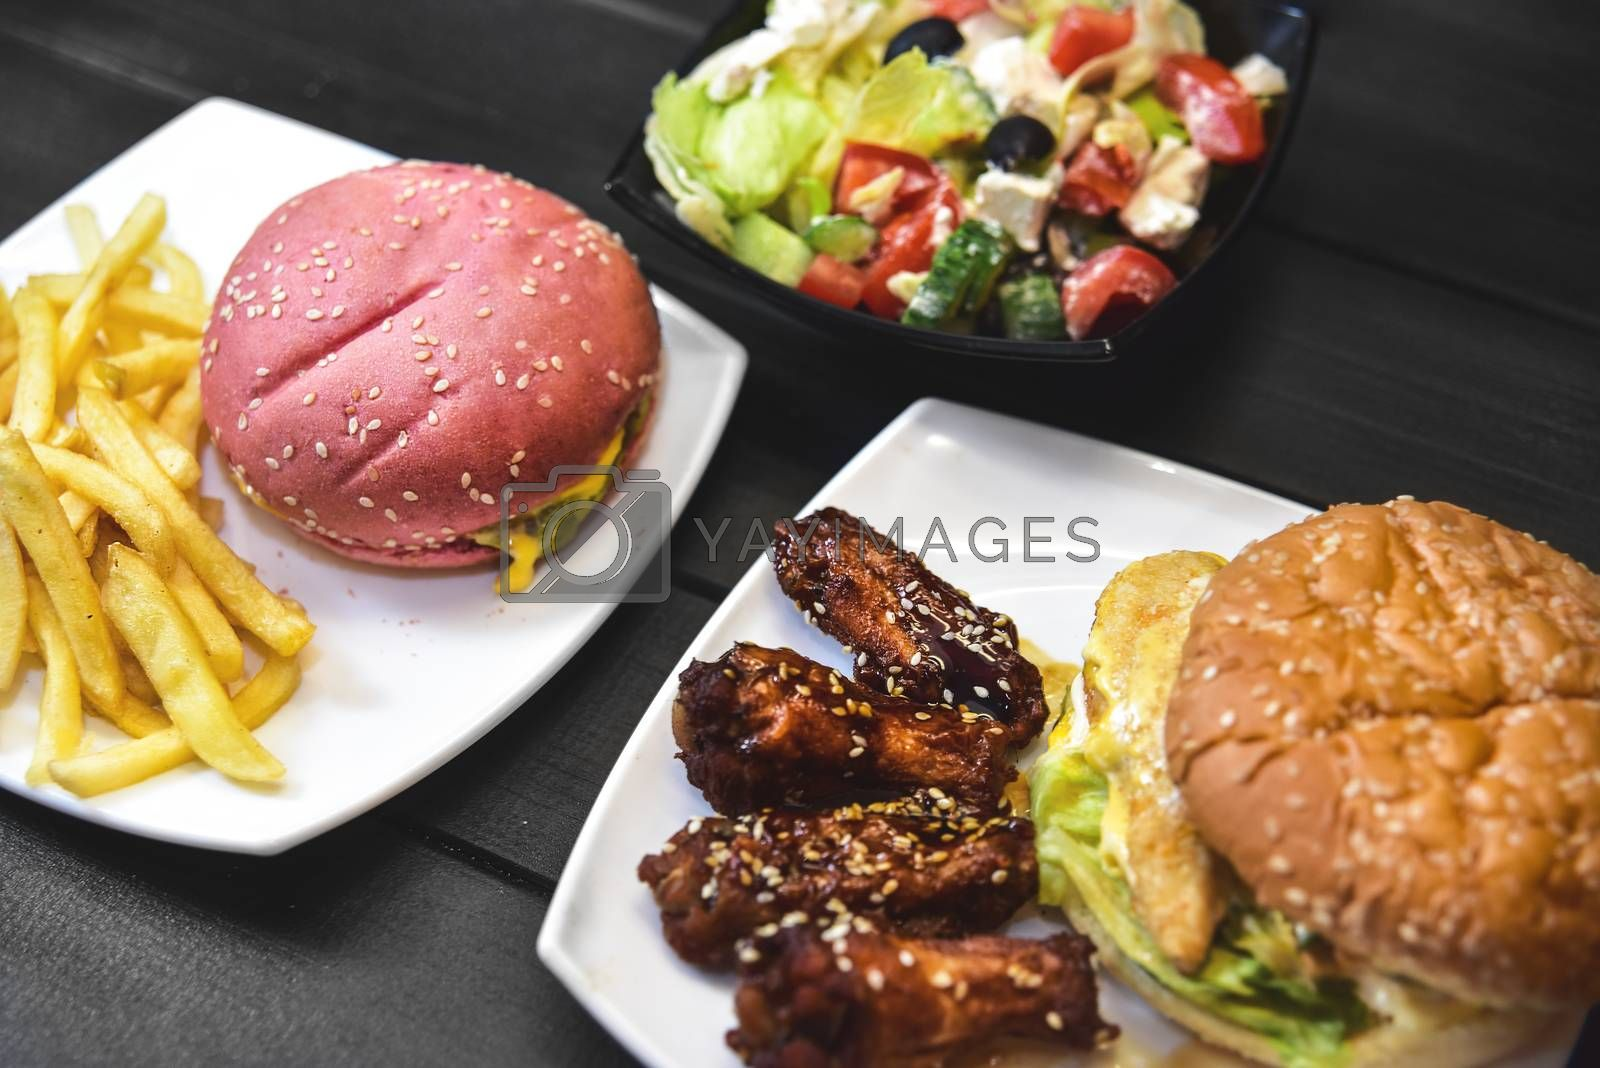 Fast food, tasty food, street food, grilled chicken, burgers French fries salad